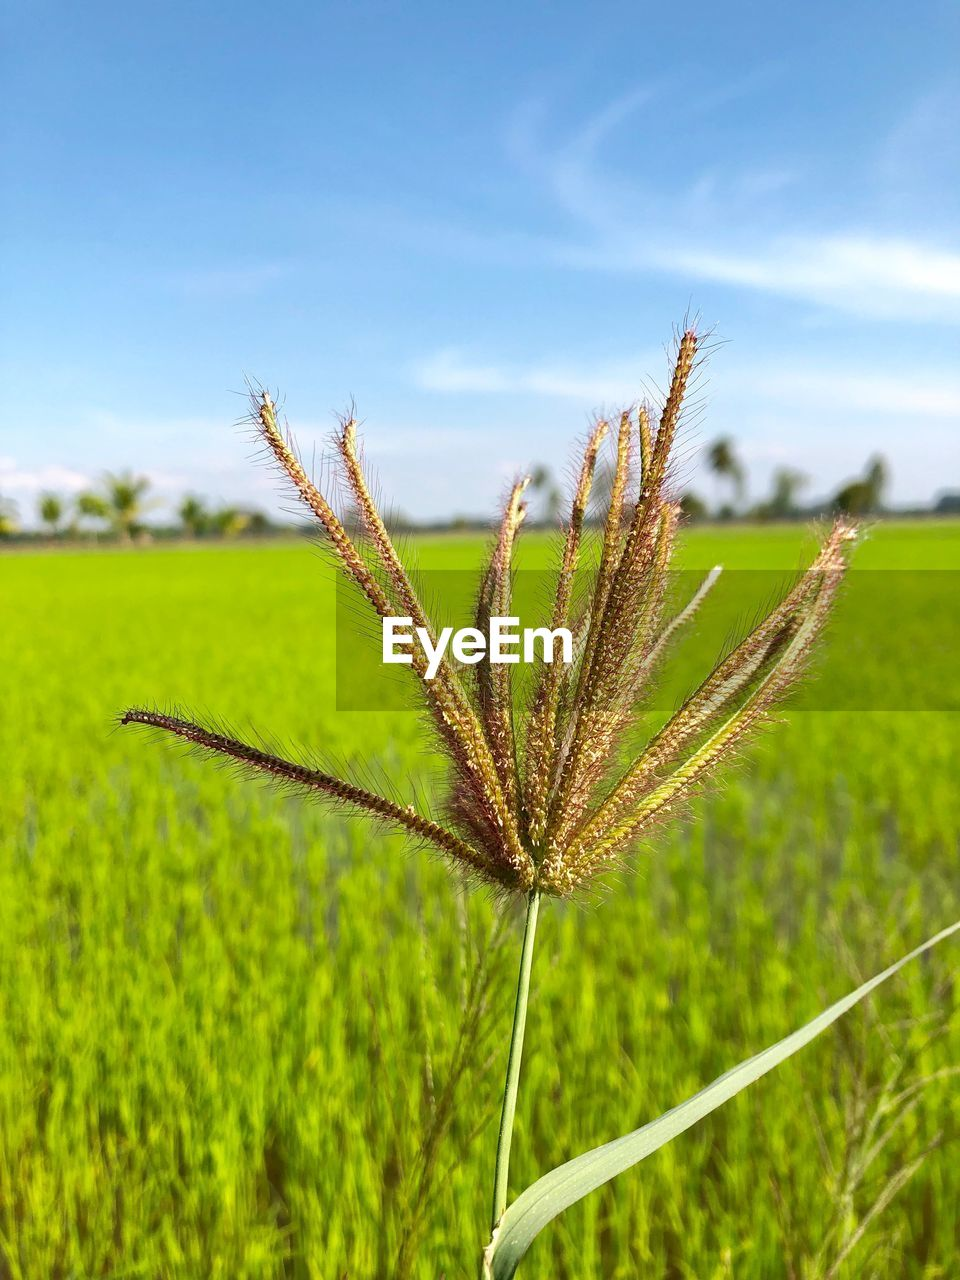 plant, growth, green color, field, beauty in nature, land, nature, agriculture, sky, focus on foreground, close-up, crop, no people, tranquility, grass, landscape, farm, day, environment, rural scene, outdoors, plantation